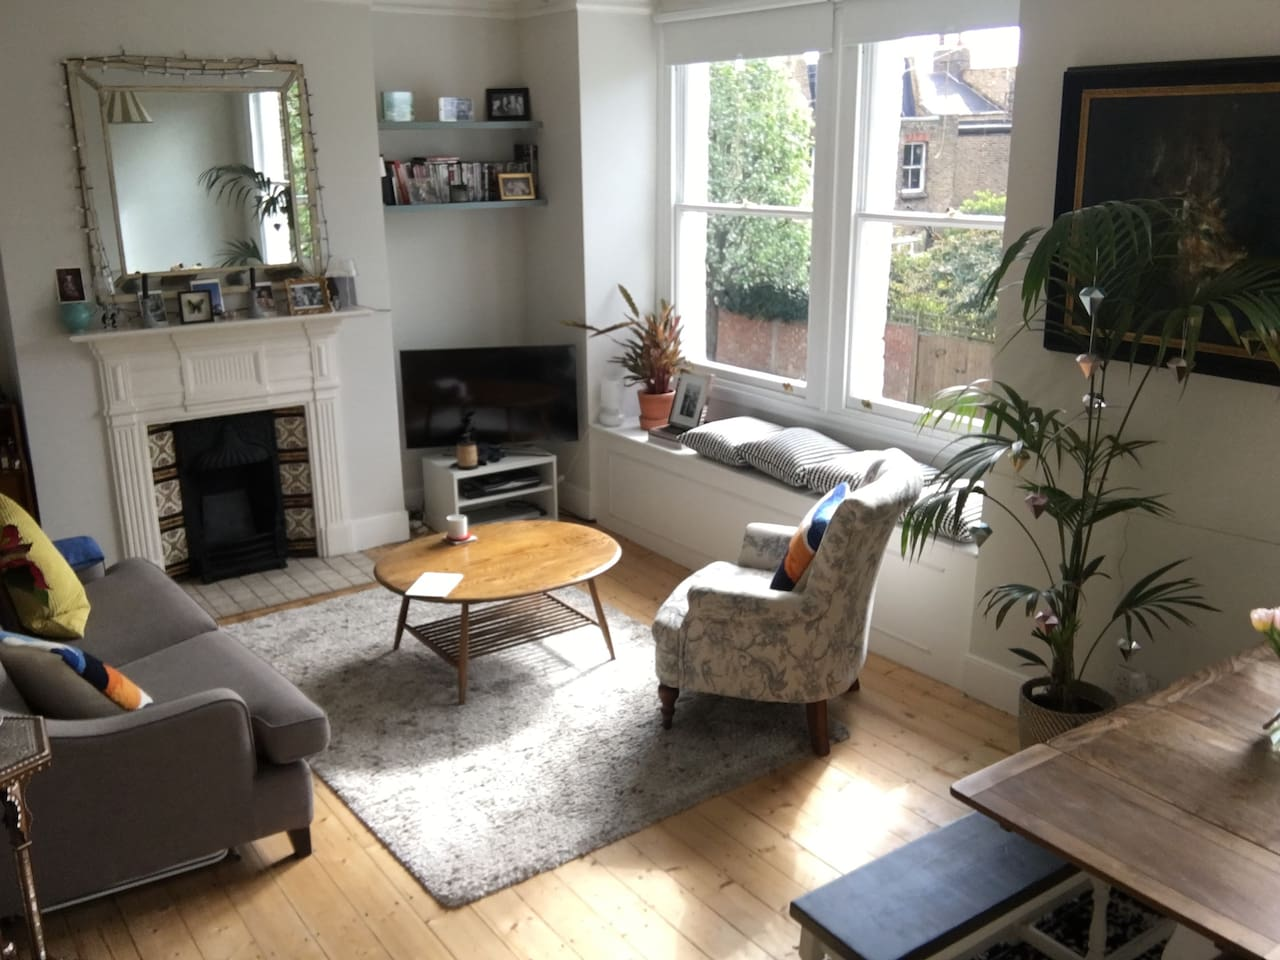 Lounge / front room, tv (with Sky), sofas and dining table